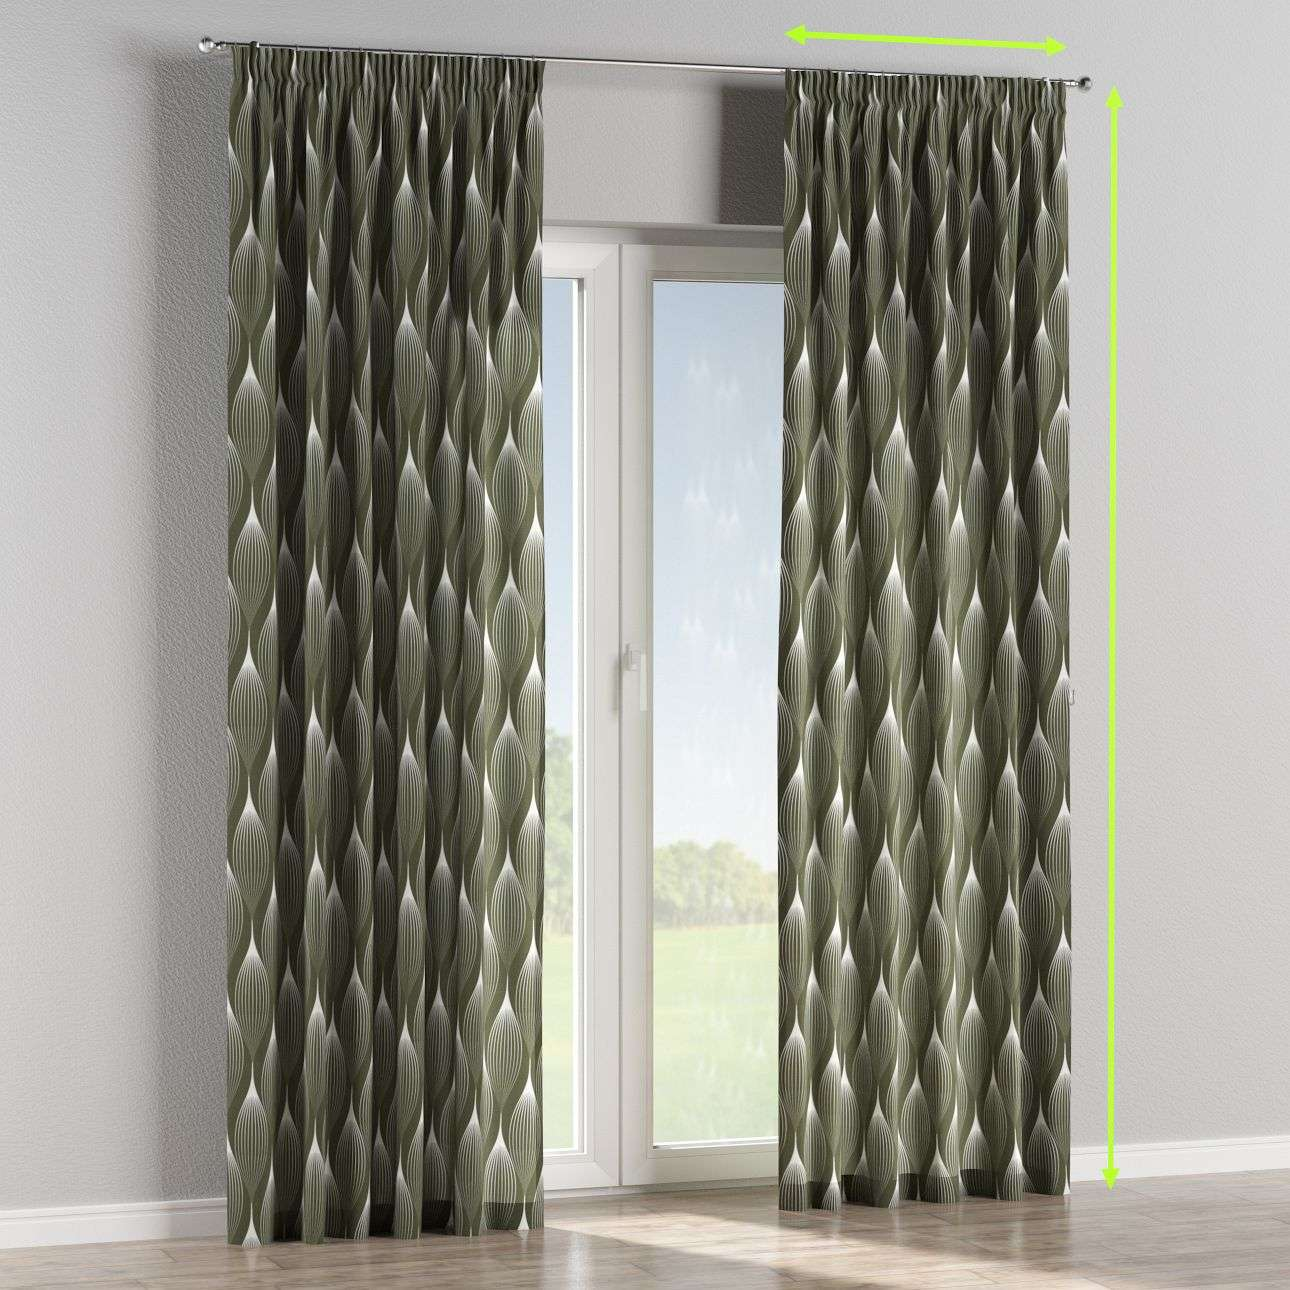 Pencil pleat curtains in collection Freestyle, fabric: 135-20